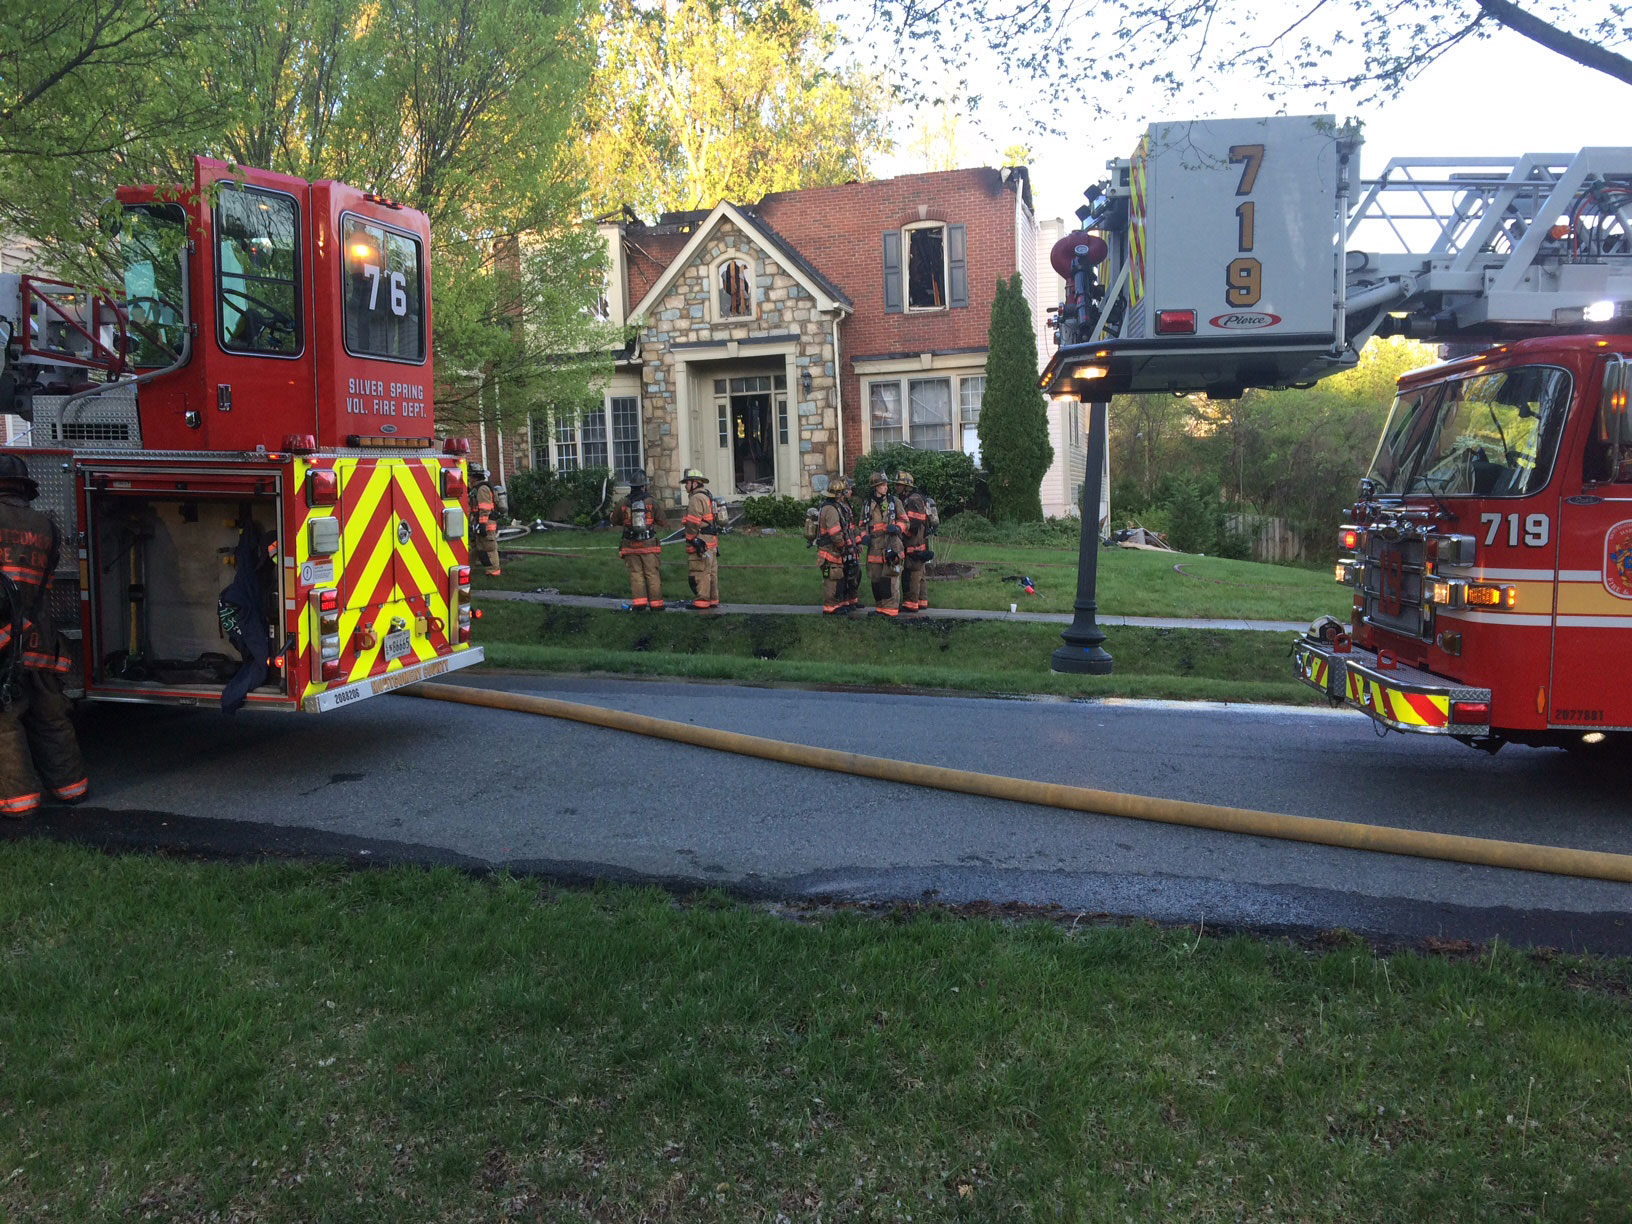 85 firefighters battle intense Silver Spring house fire